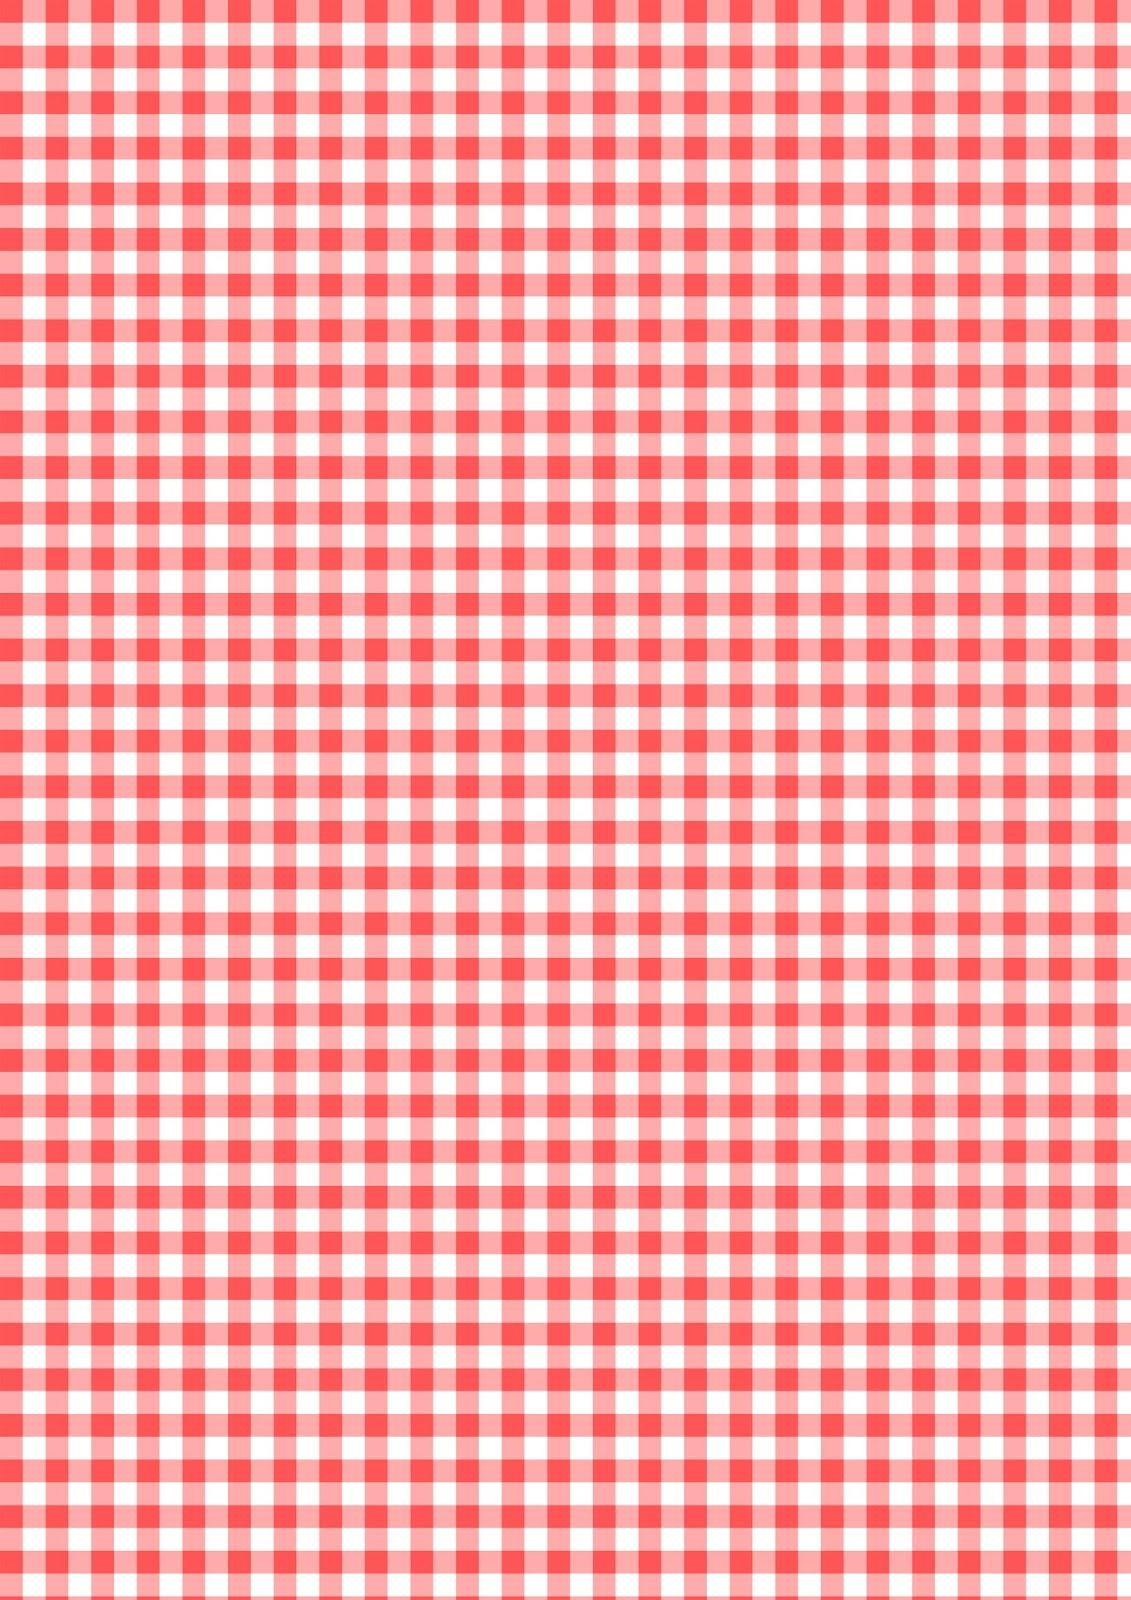 Free printable red and white colored gingham pattern paper